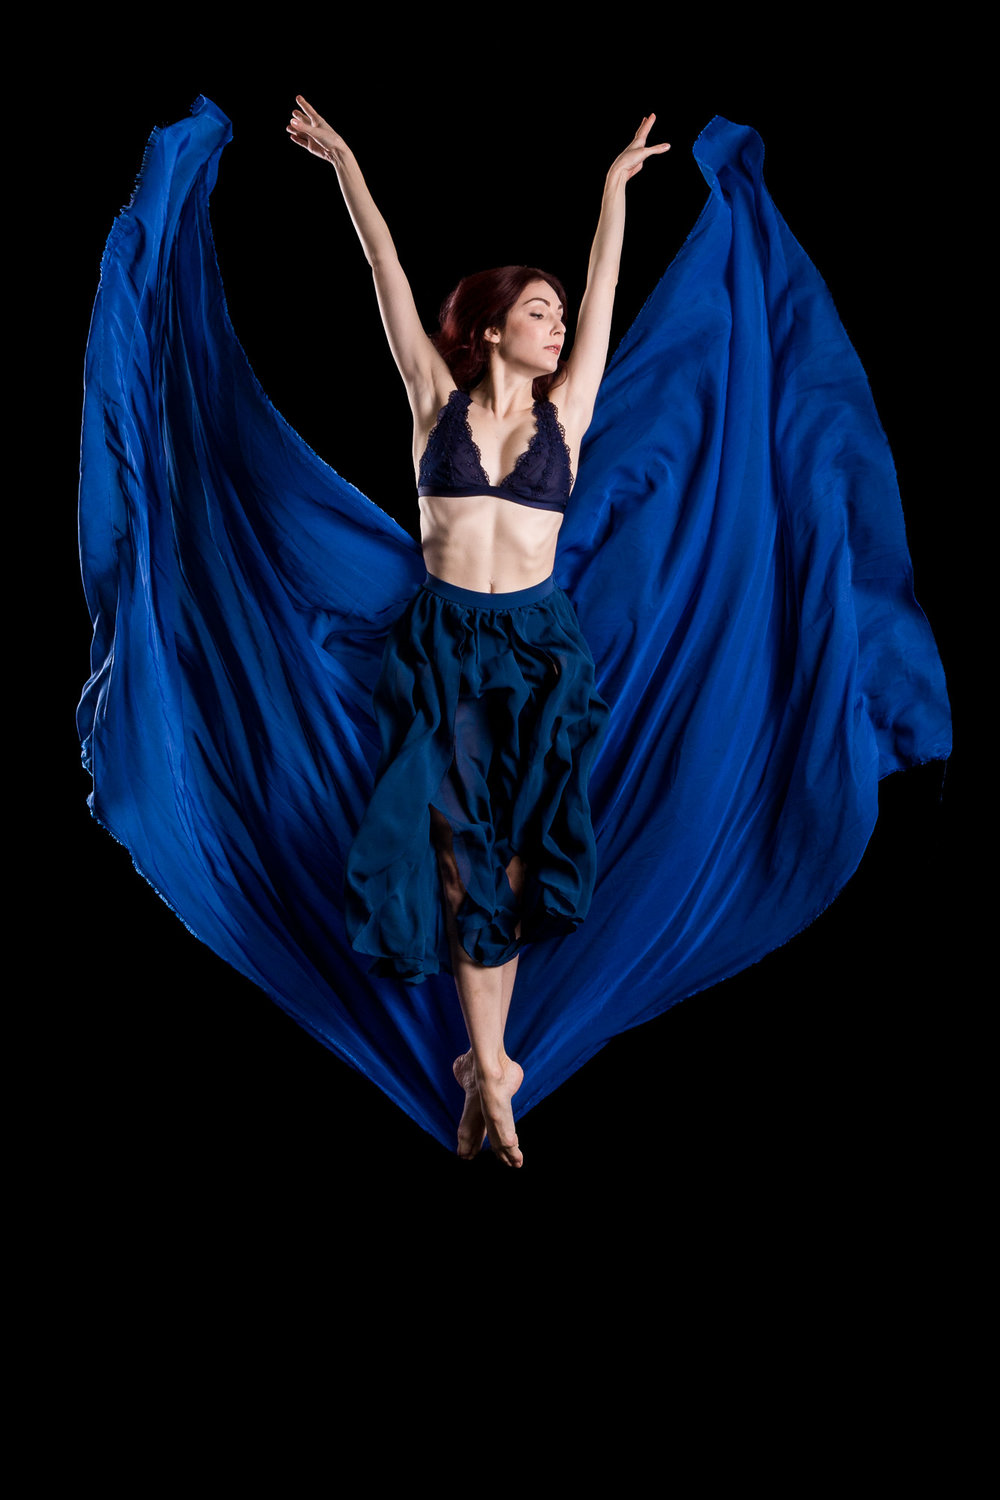 female-dancer-jumping-with-blue-fabric.jpg